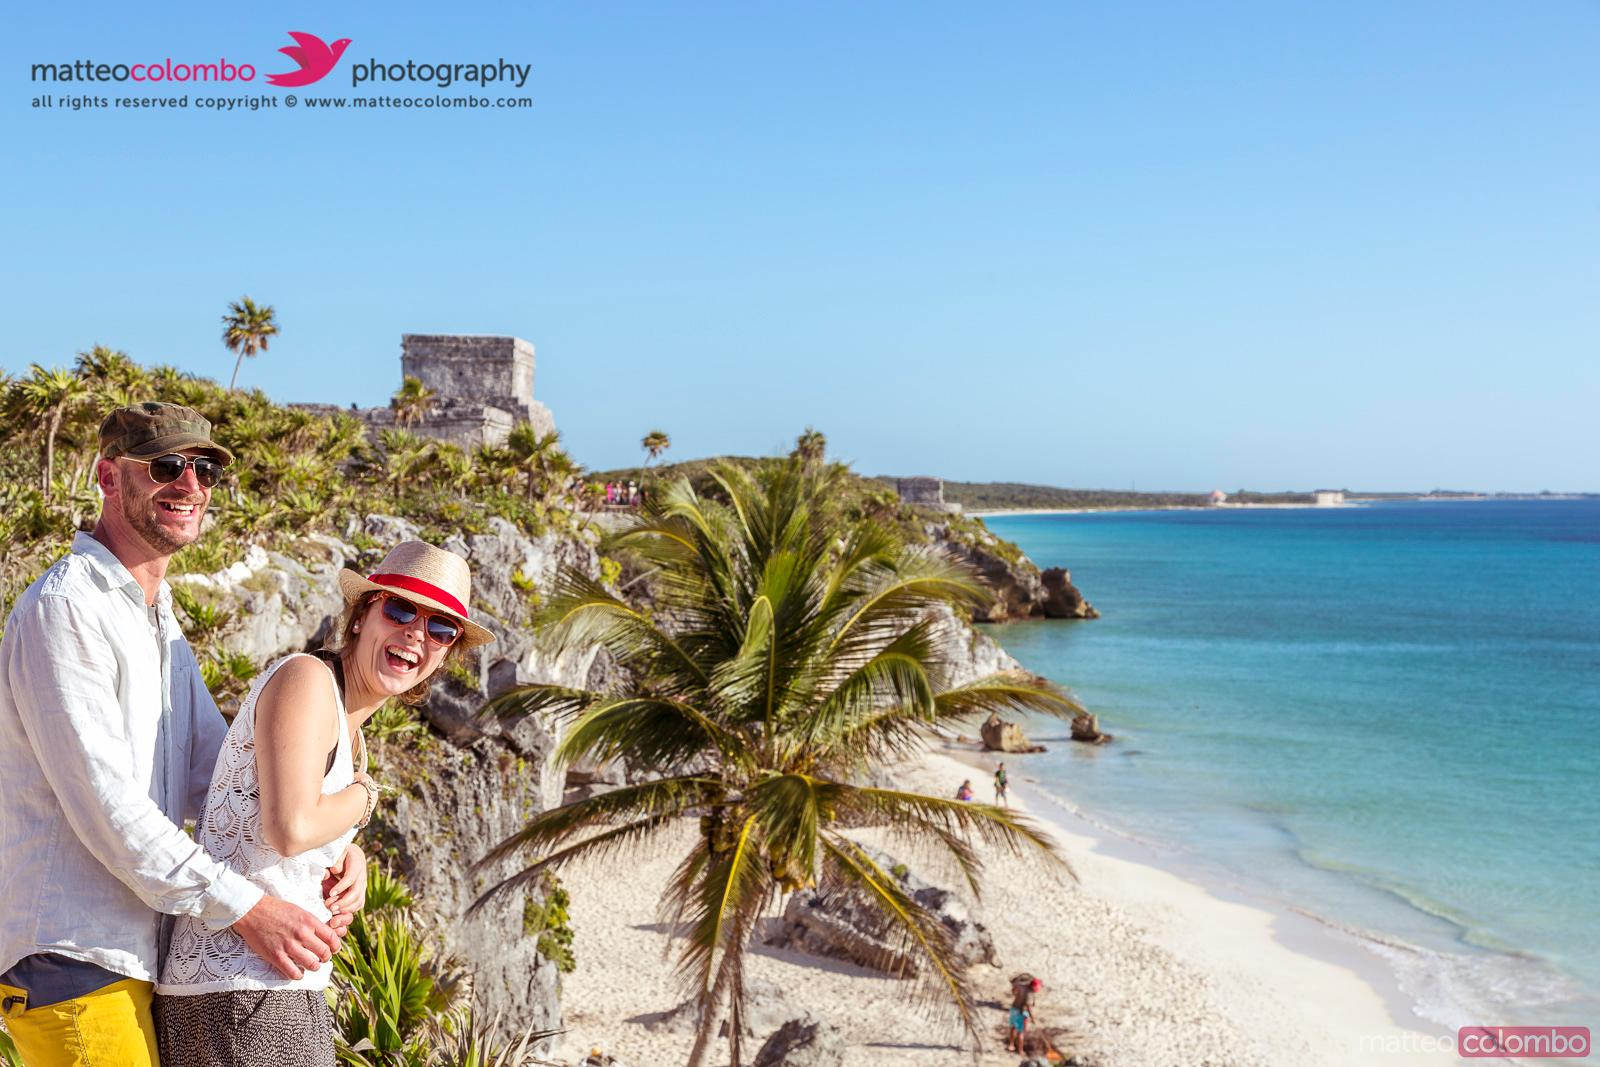 Tourist couple visiting the mayan ruins of Tulum, Mexico